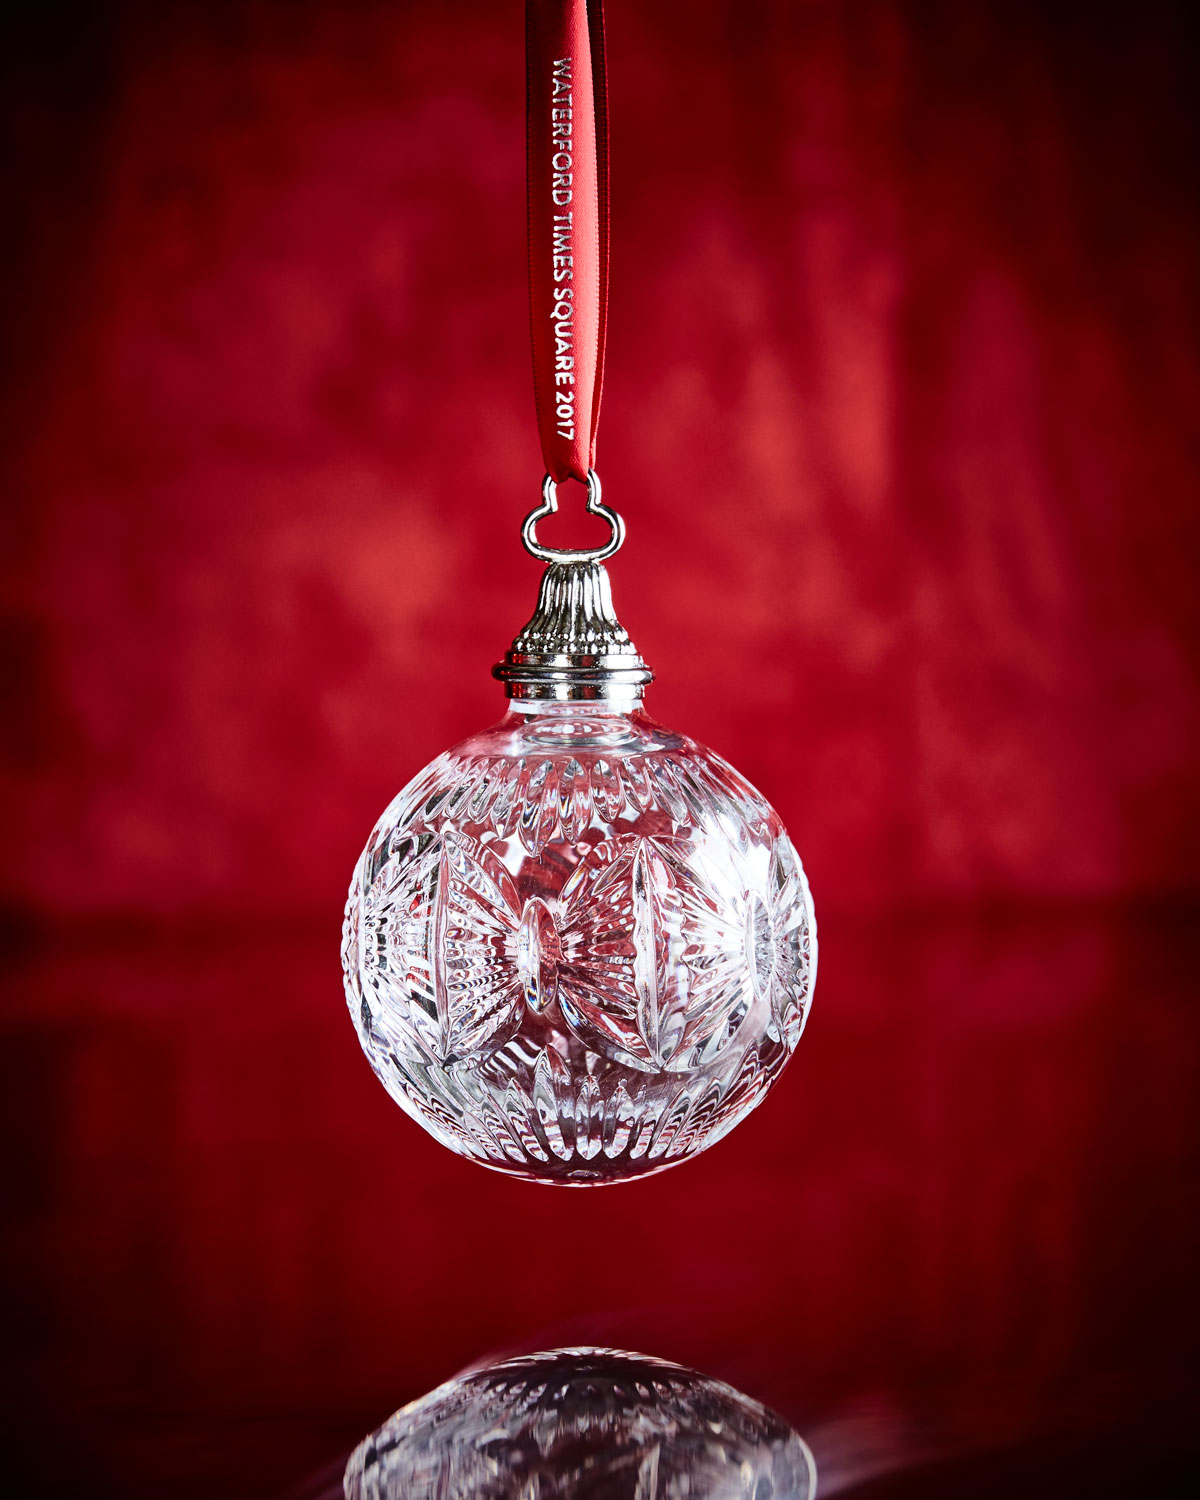 Waterford crystal times square ball ornament neiman marcus - Waterford crystal swimming pool times ...